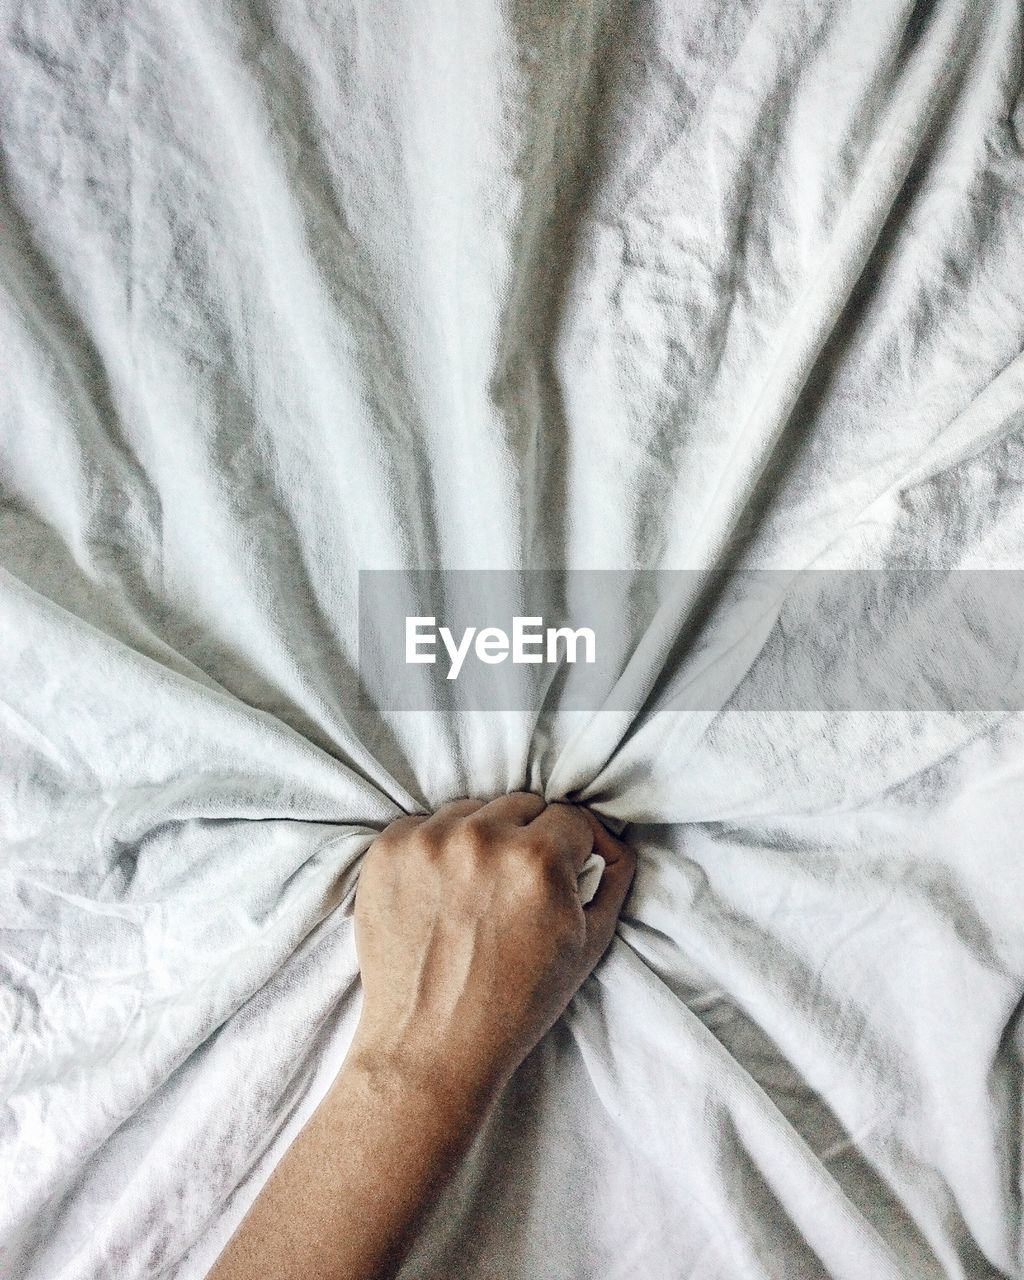 Close-Up Of Hand Gripping Crumpled Bedsheet